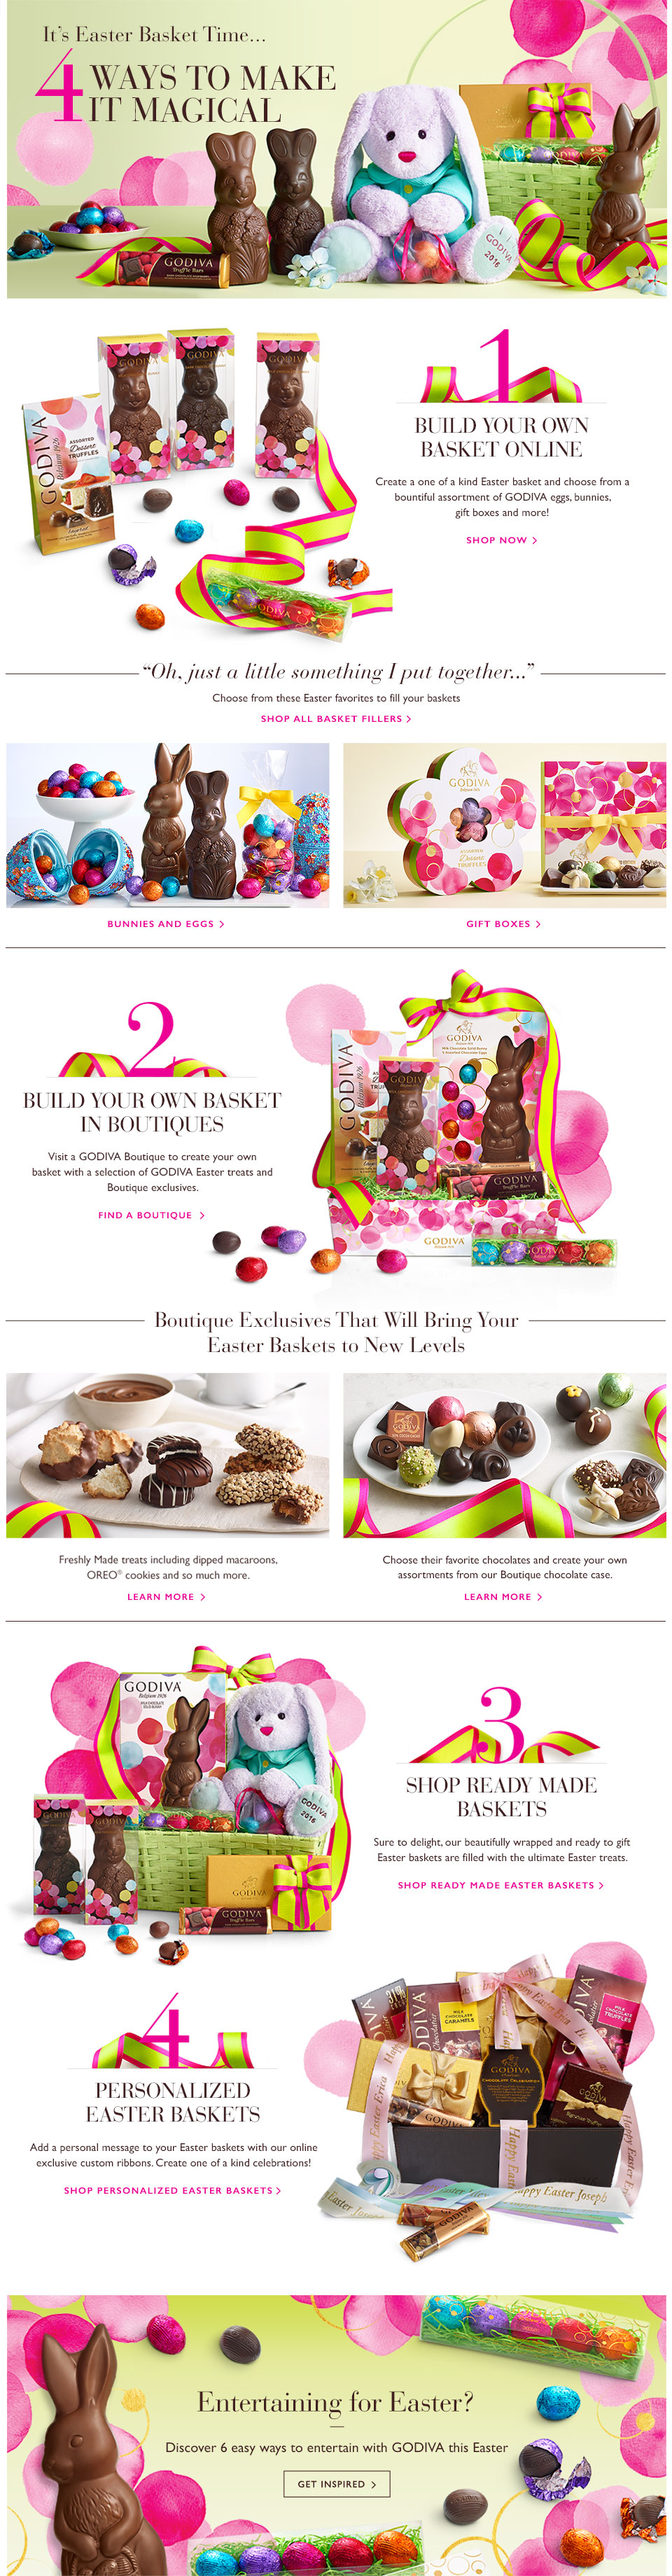 Build Your Own Easter Baskets with GODIVA Chocolate Bunnies and Eggs